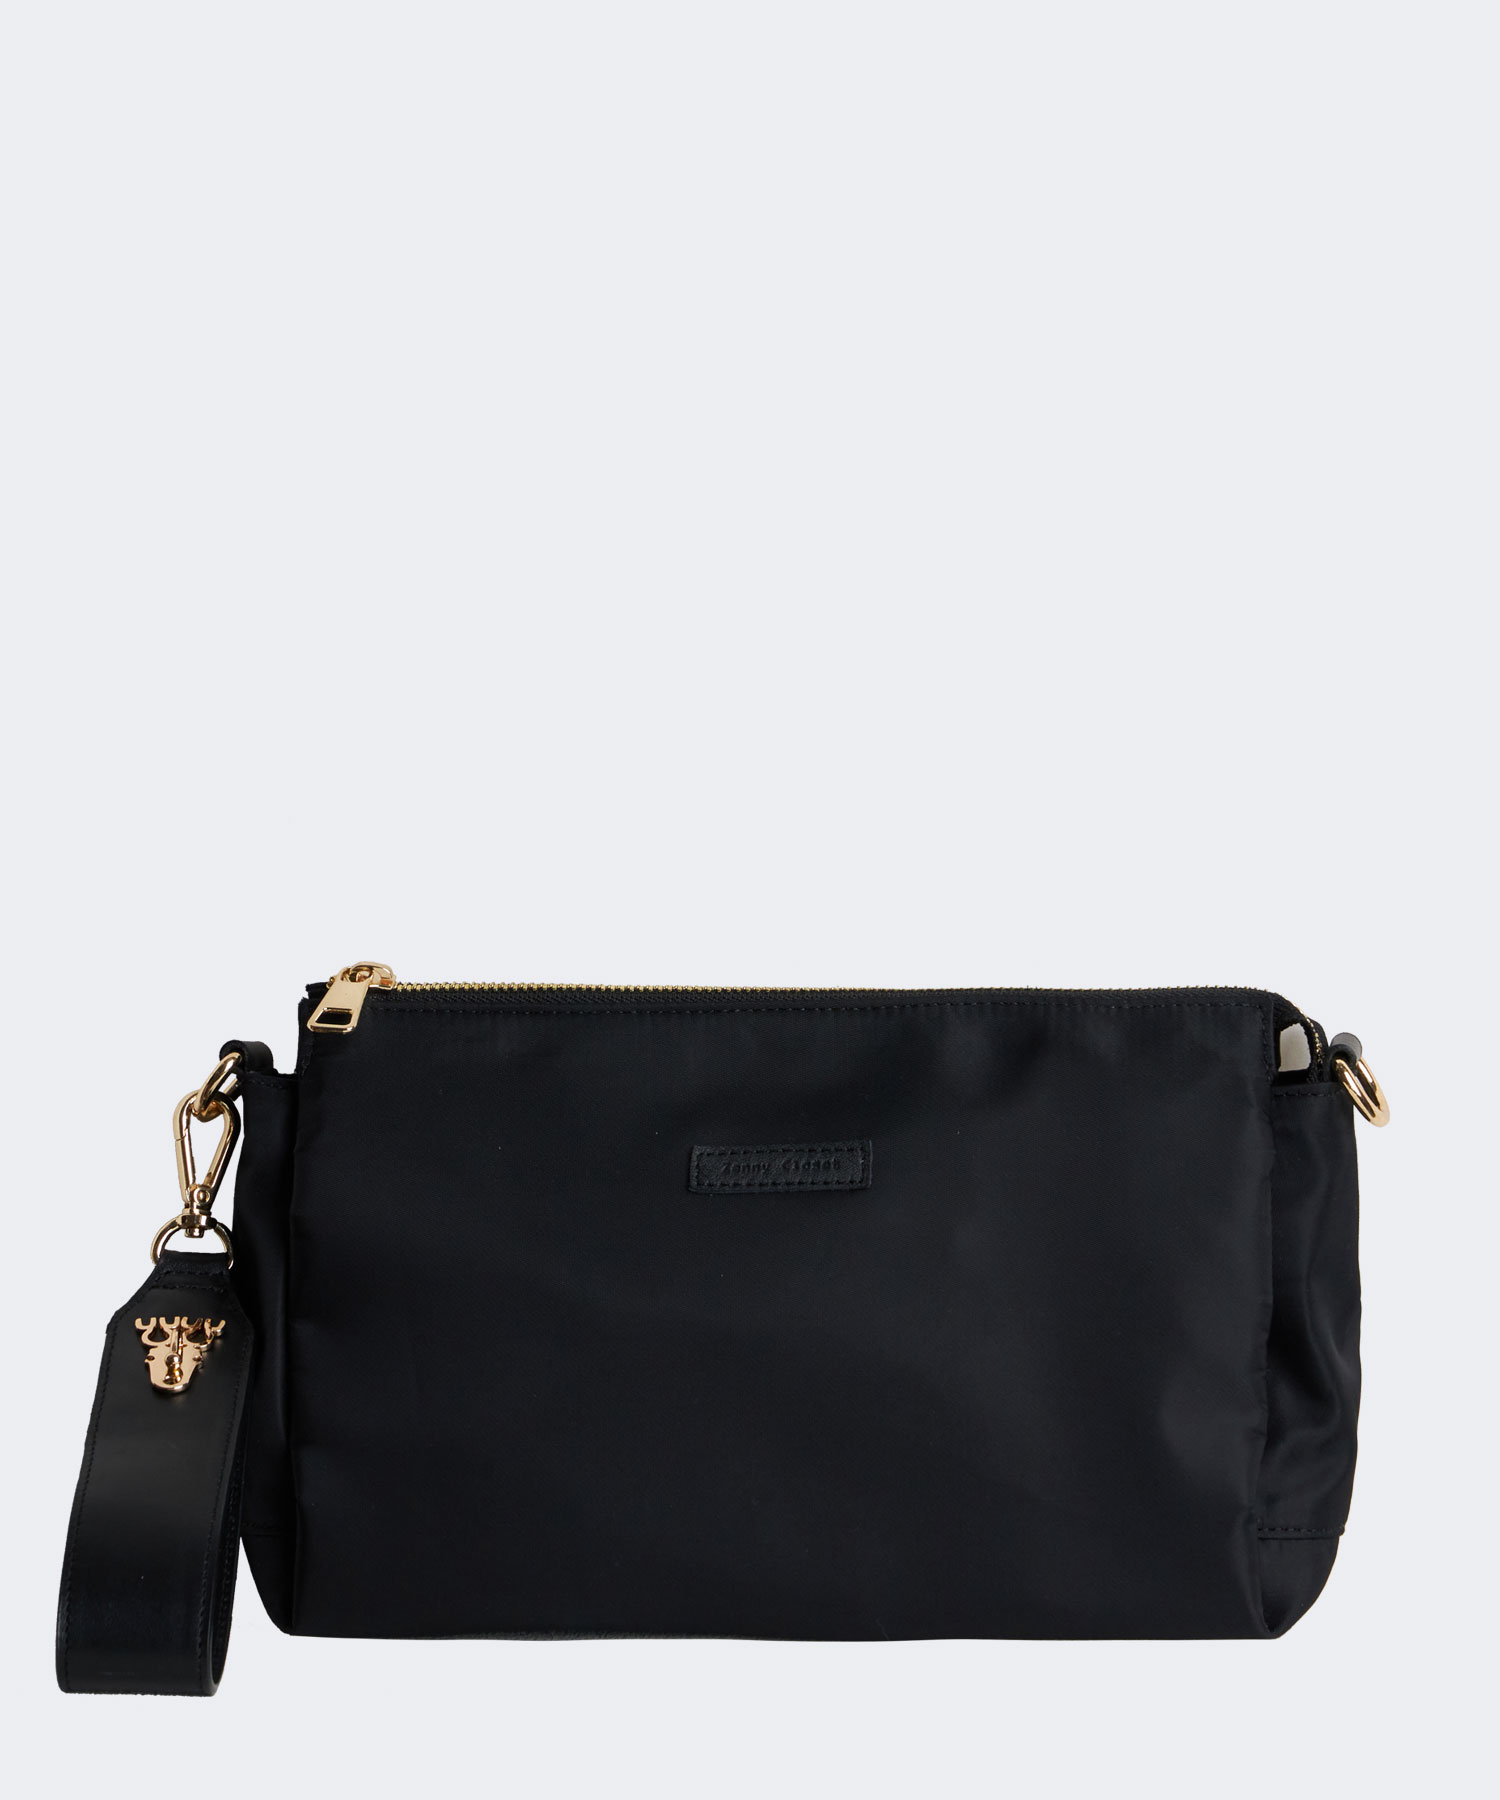 Ron Shoulder Bag ( :론 숄더백)